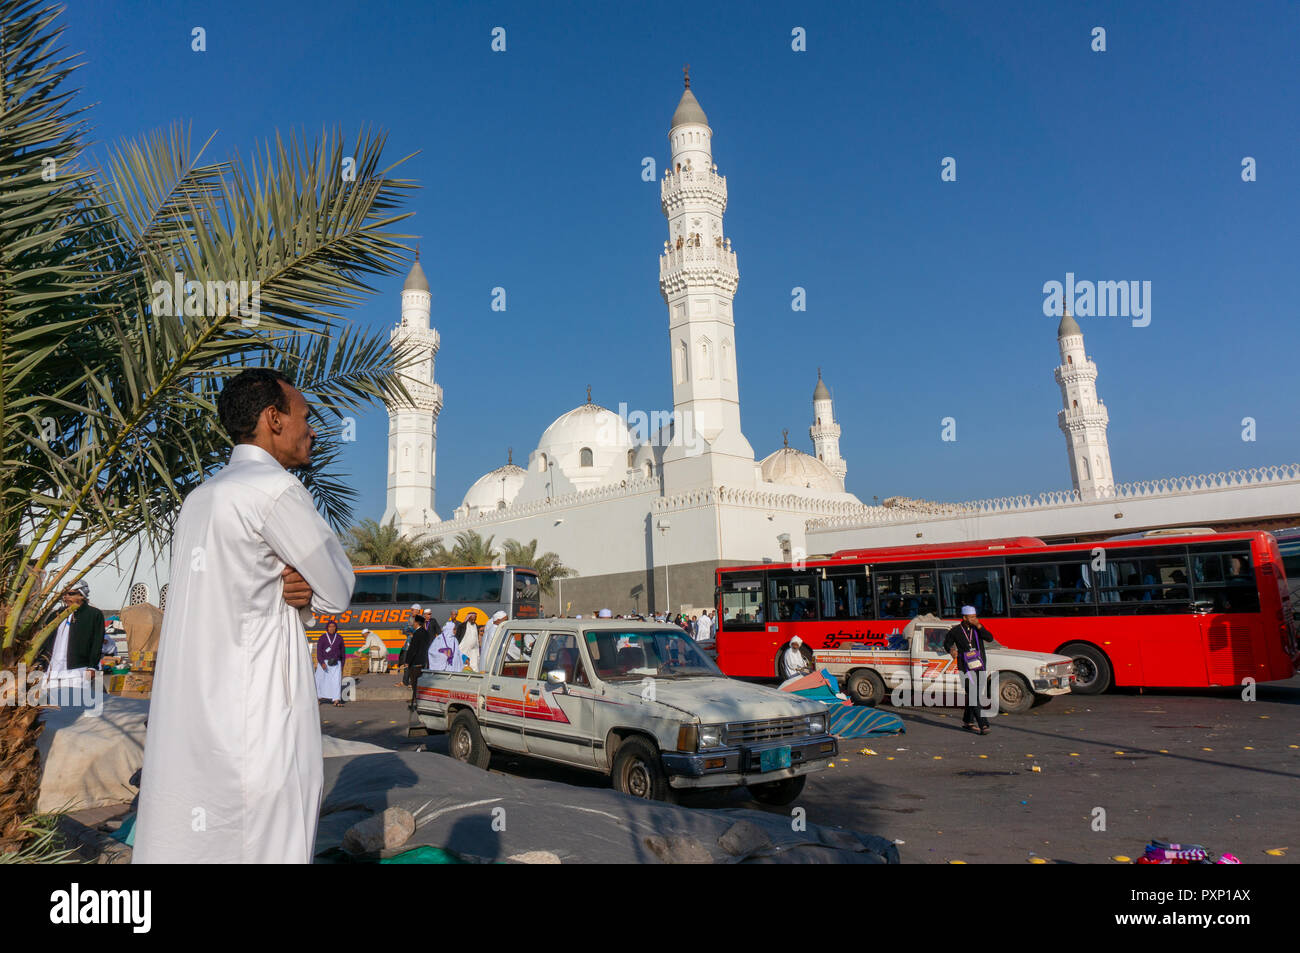 MEDINA, SAUDI ARABIA-CIRCA 2014 : Muslims at the compound of Masjid Quba in Medina, Saudi Arabia. This is the first mosque built by Prophet Muhammad ( - Stock Image